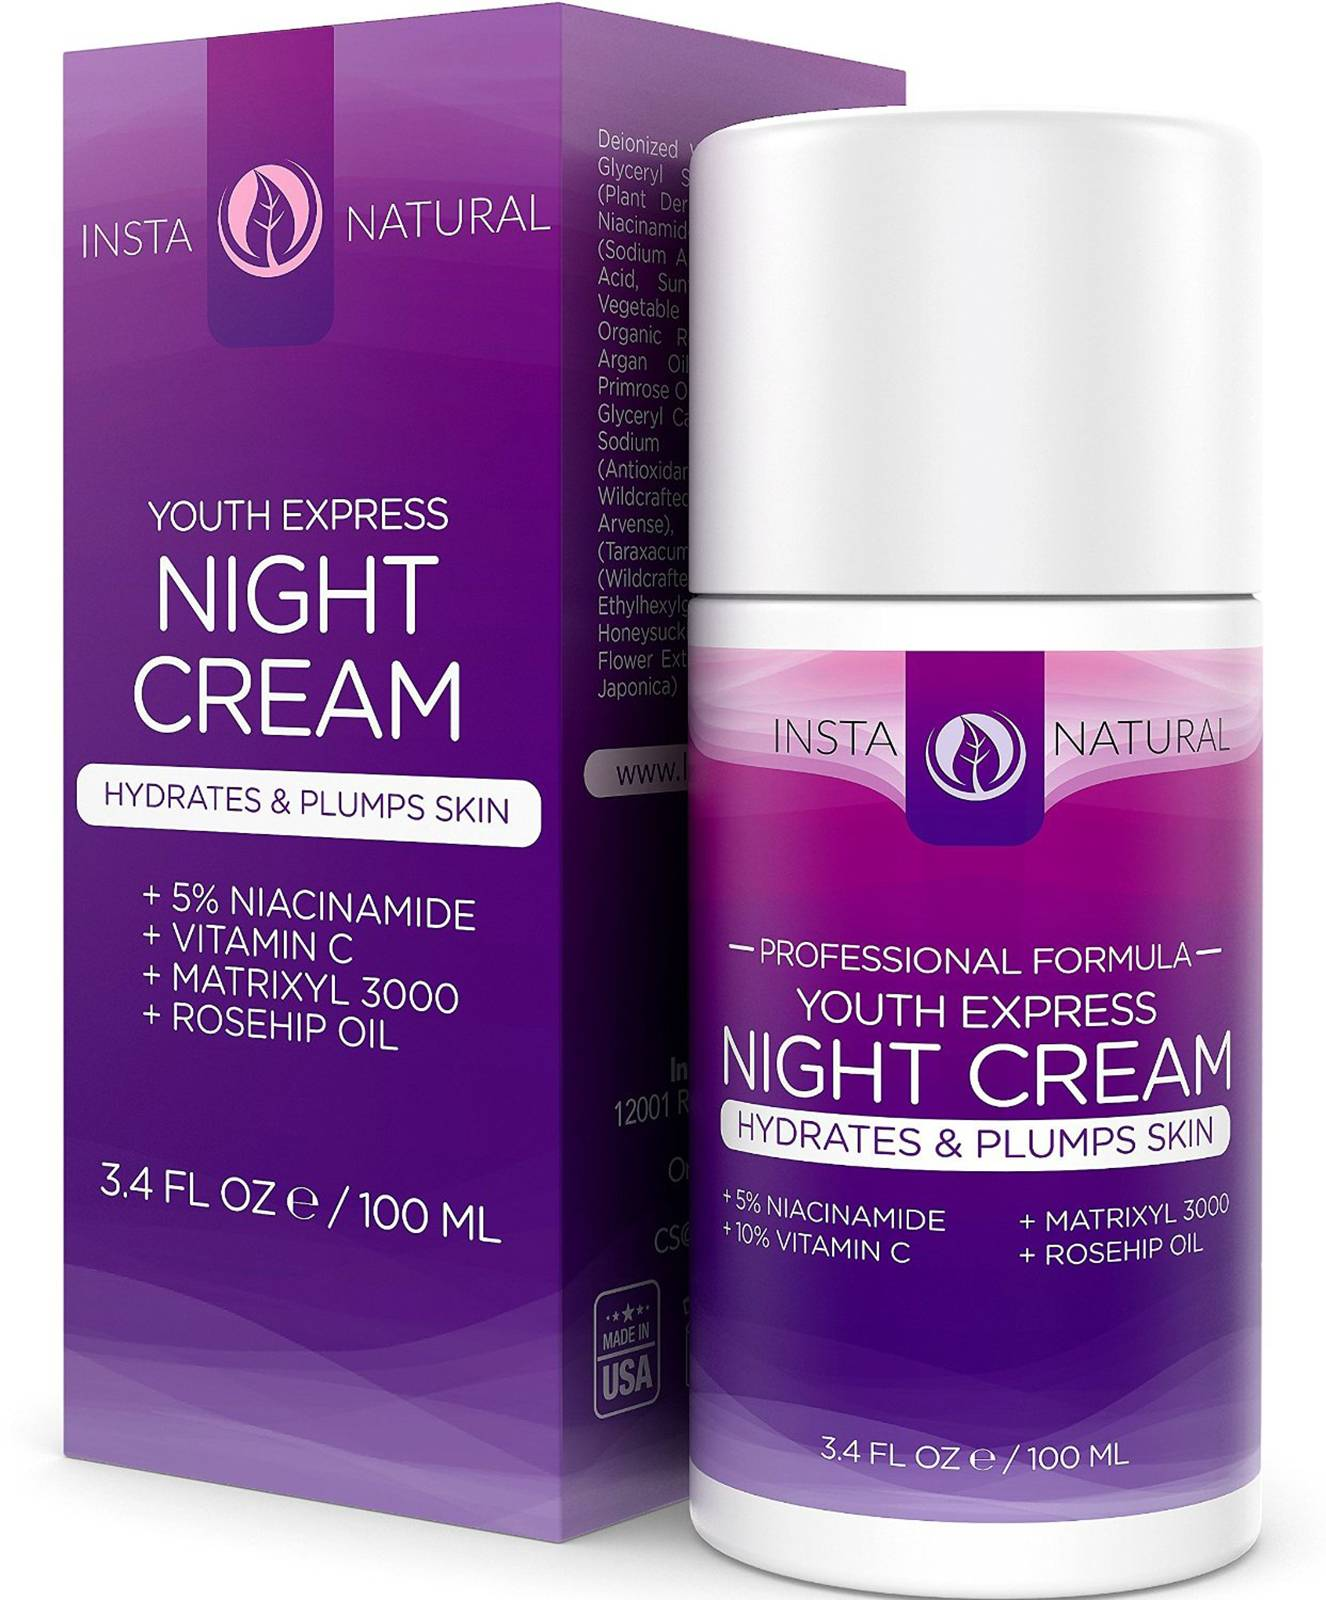 InstaNatural Youth Express Night Cream - $18.75 - It?s called ?beauty sleep? for a reason. During dream-time is when our skin does the most regenerating and healing. That?s why it?s important to moisturize and make use of nighttime absorption to aid healing and rejuvenation. This night cream, in particular, helps to reverse signs of aging and will have you feeling confident enough to say, ?I woke up like this!?(Photo: Courtesy of www.instanatural.com)